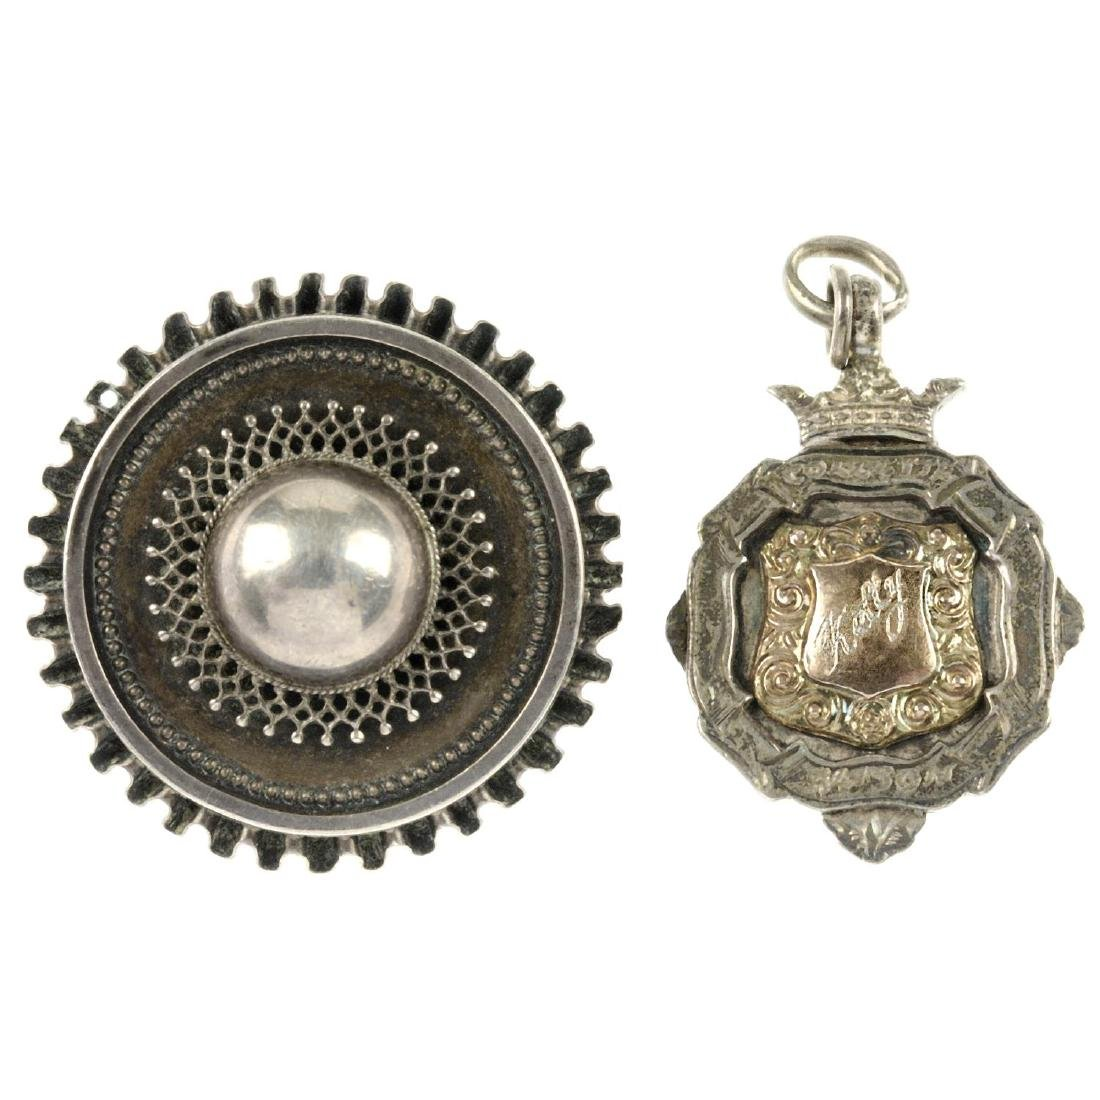 Seven items of late 19th to early 20th century silver